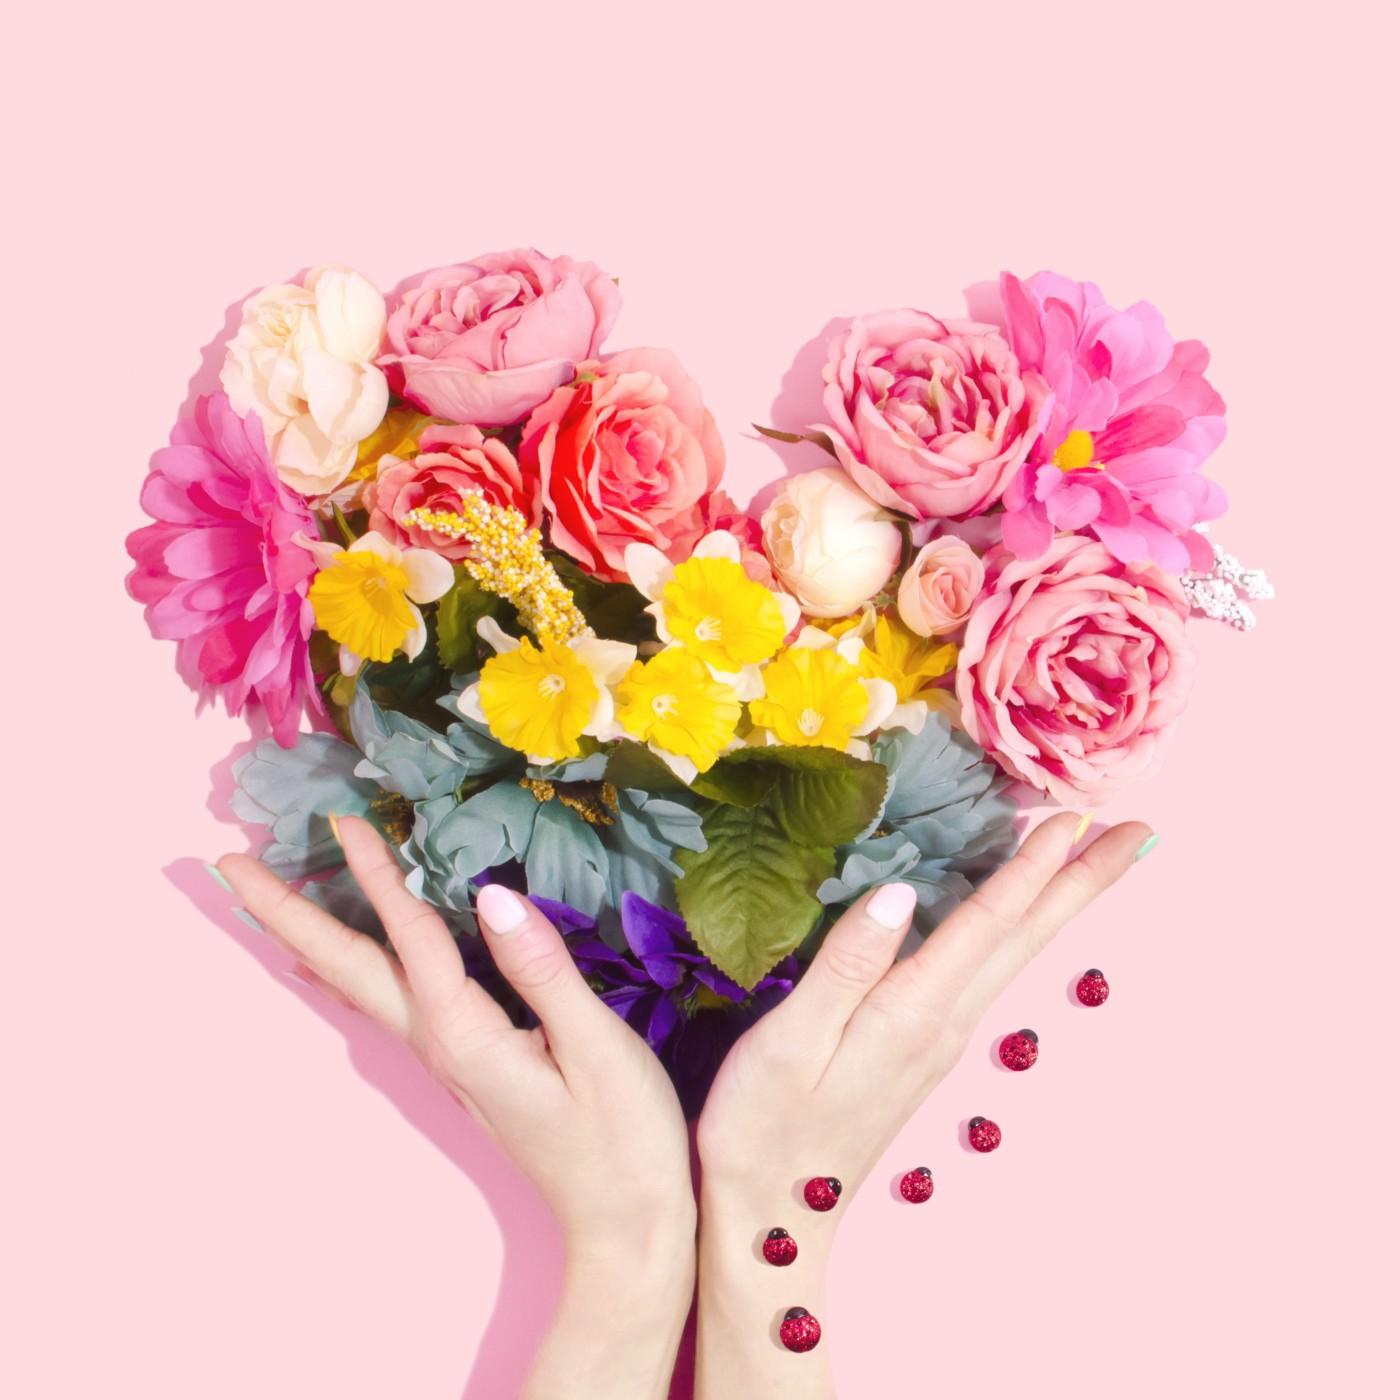 Flowers in heart shape form under a pink background